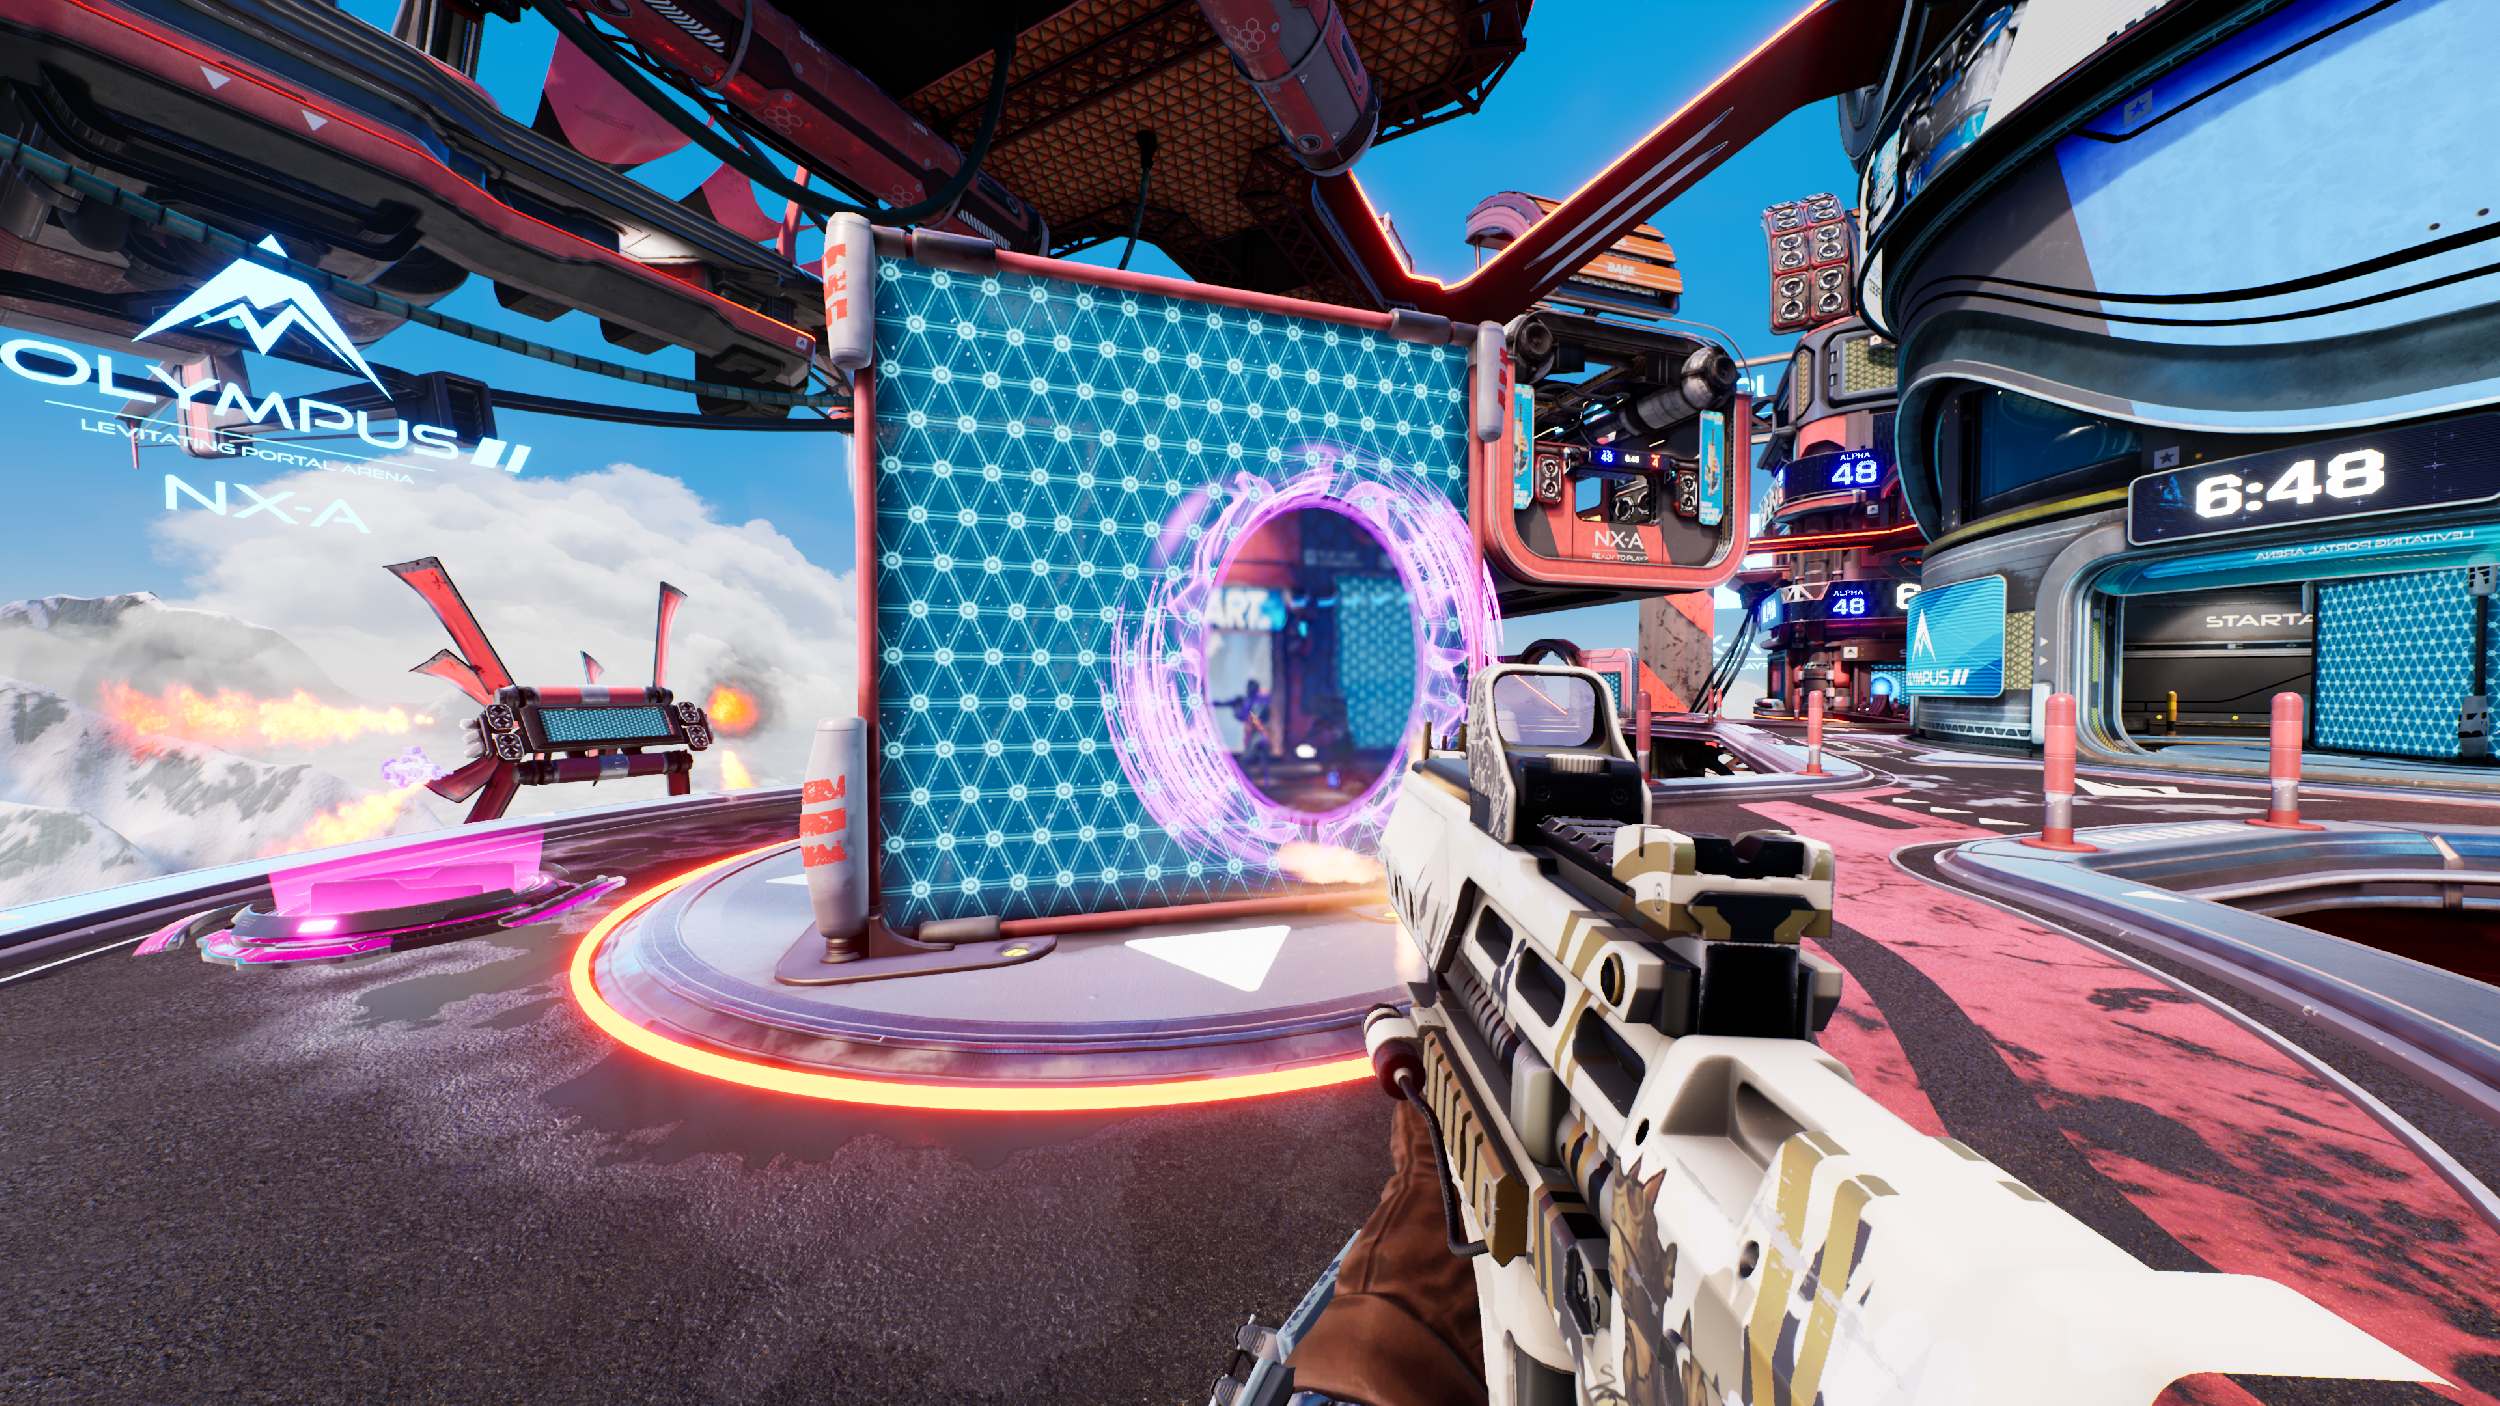 1047 Games raises $100M on the runaway success of its debut title, Splitgate